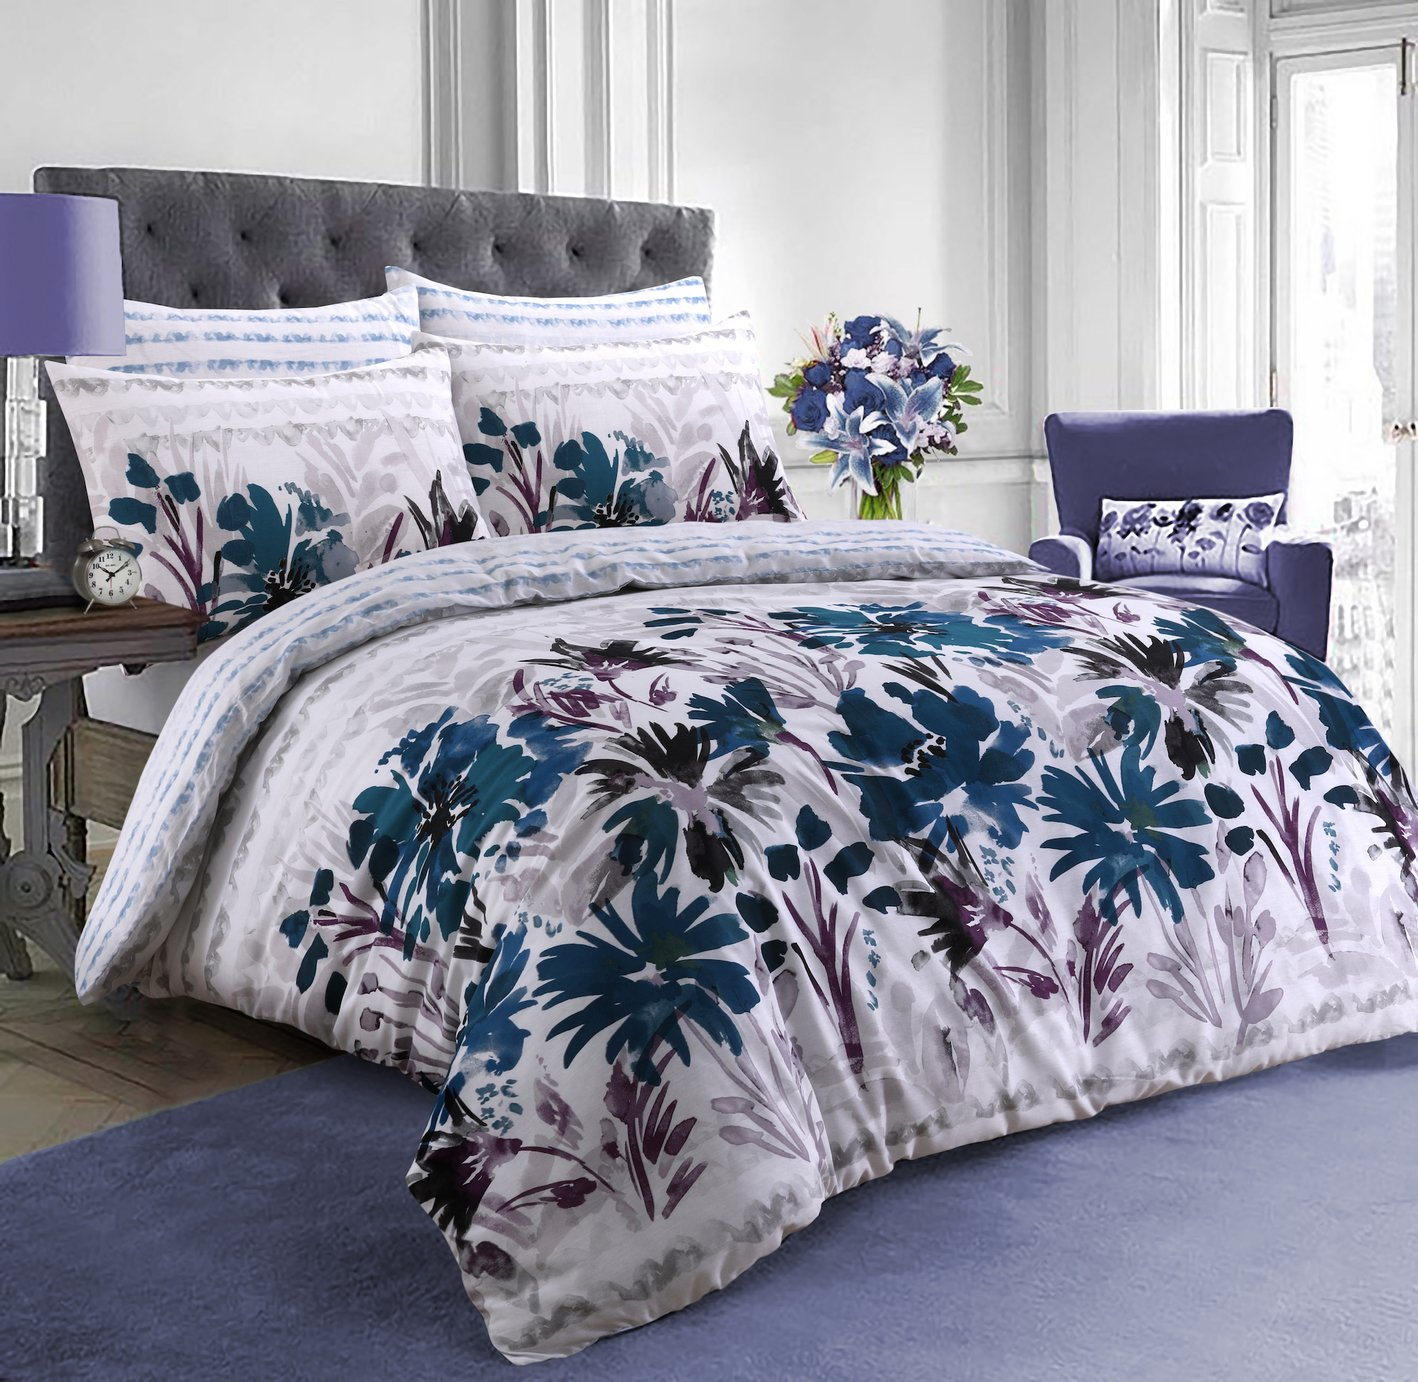 Argos Home Bright Garden Flowers Bedding Set - Single